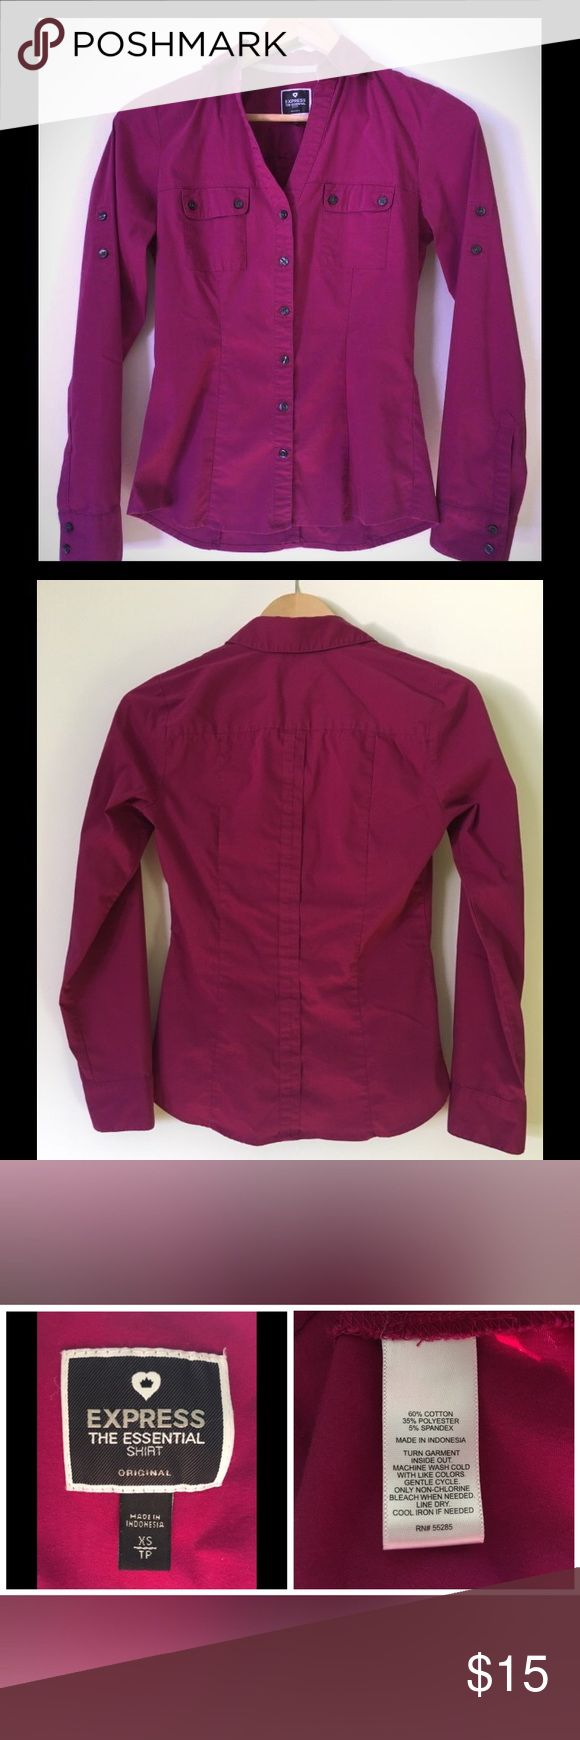 Express Convertible Essential Shirt, Magenta, XS Original fit, convertible sleeve Essential Shirt from Express in good used condition! Tuck into a pencil skirt for work or pair with jeans for a casual look.  Button front (extra button included!). Fitted shape. Front pockets. Long sleeves convert to half or 3/4 sleeves by rolling up, securing with tab & button.   Some signs of wear (photos): (1) Slight pilling between top and second buttons (2) Some threading has come undone from right collar…